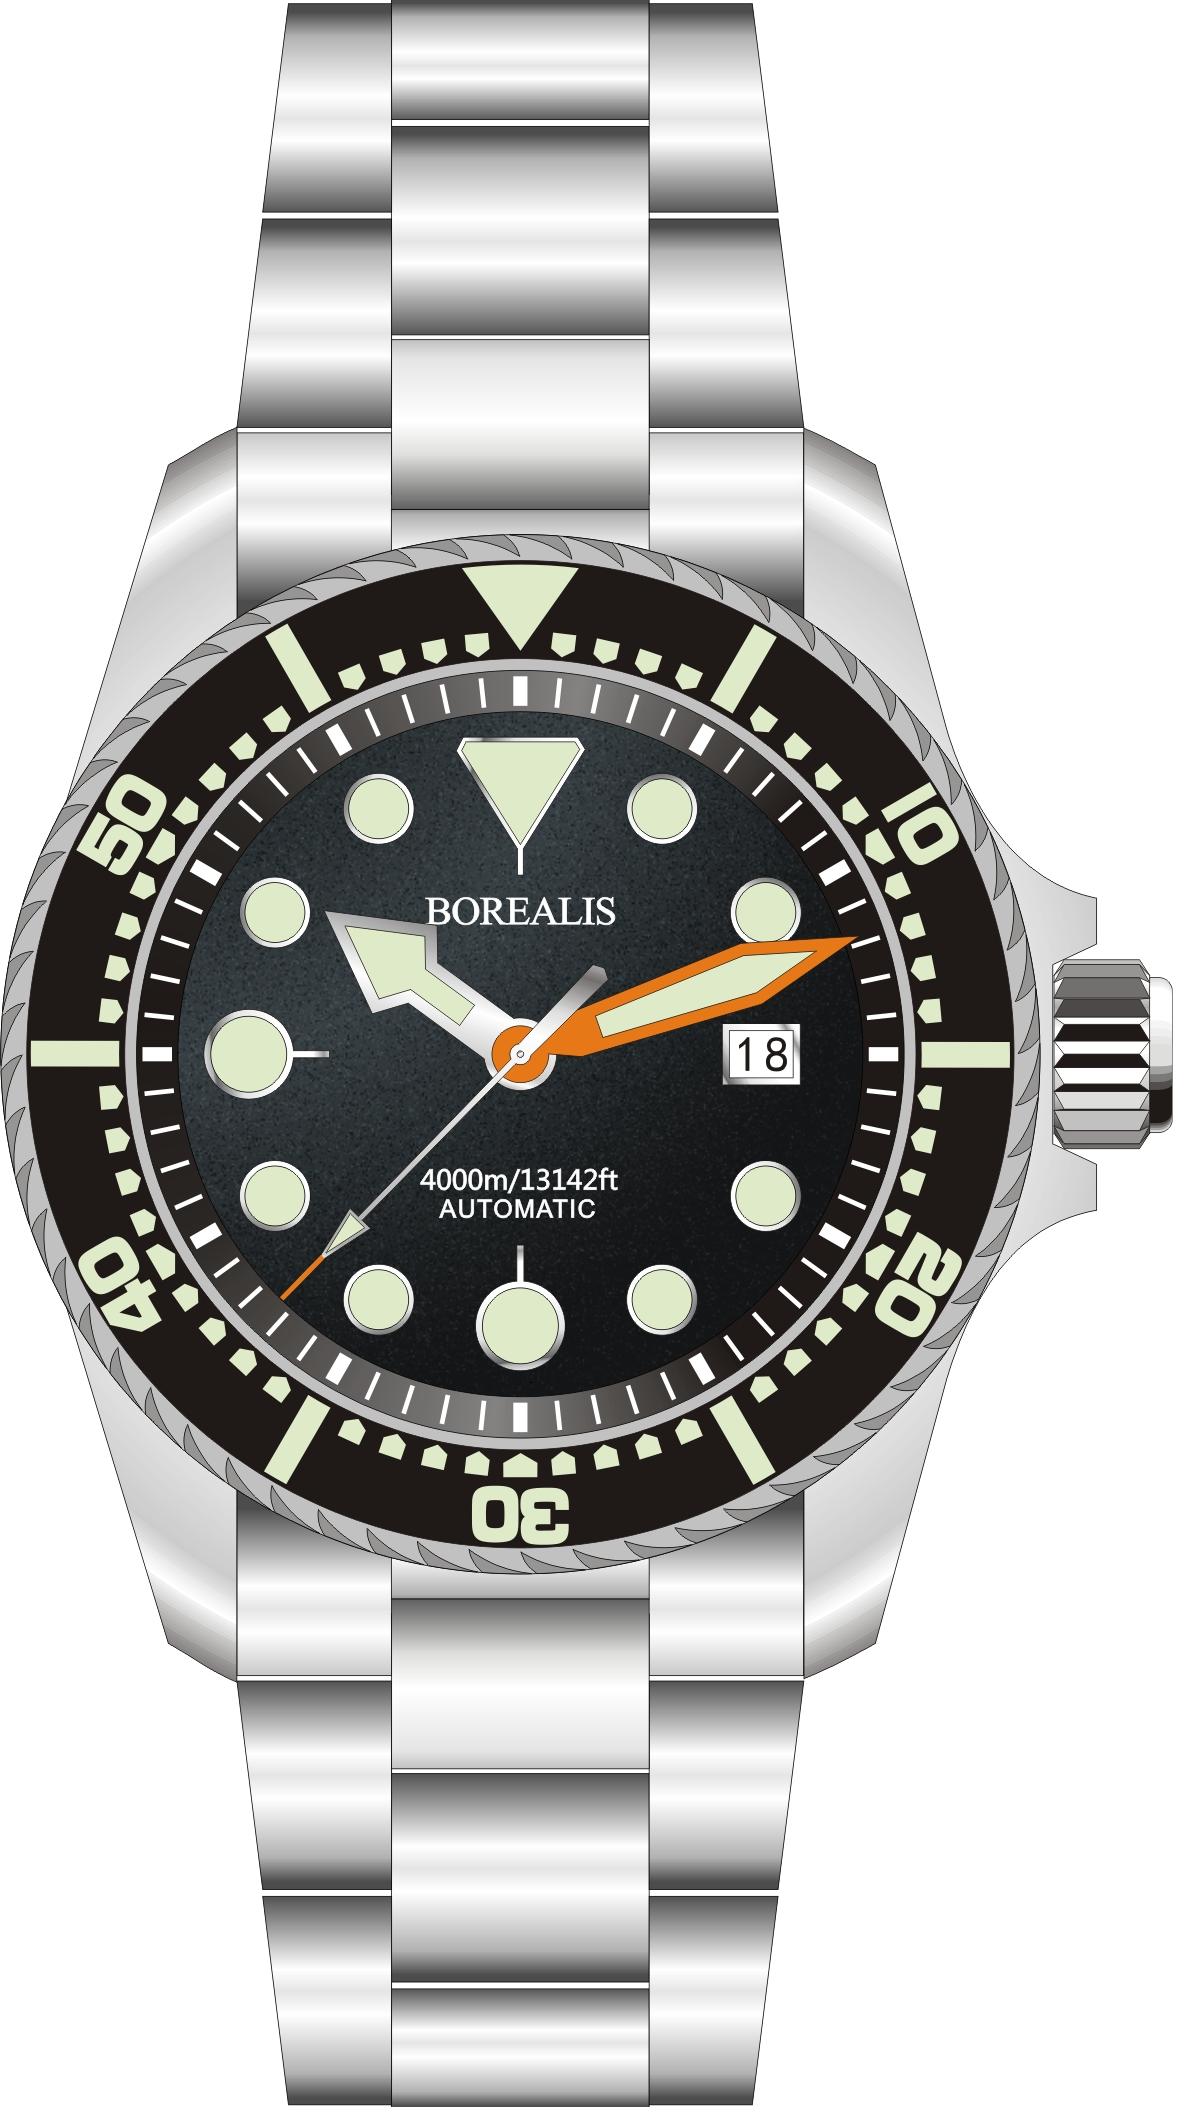 Borealis Seafarer II Stainless Steel Black C3 Sapphire Turbine Style Grip Bezel 4000m Miyota 9015 Automatic Diver Watch BSFIIBLACKC3